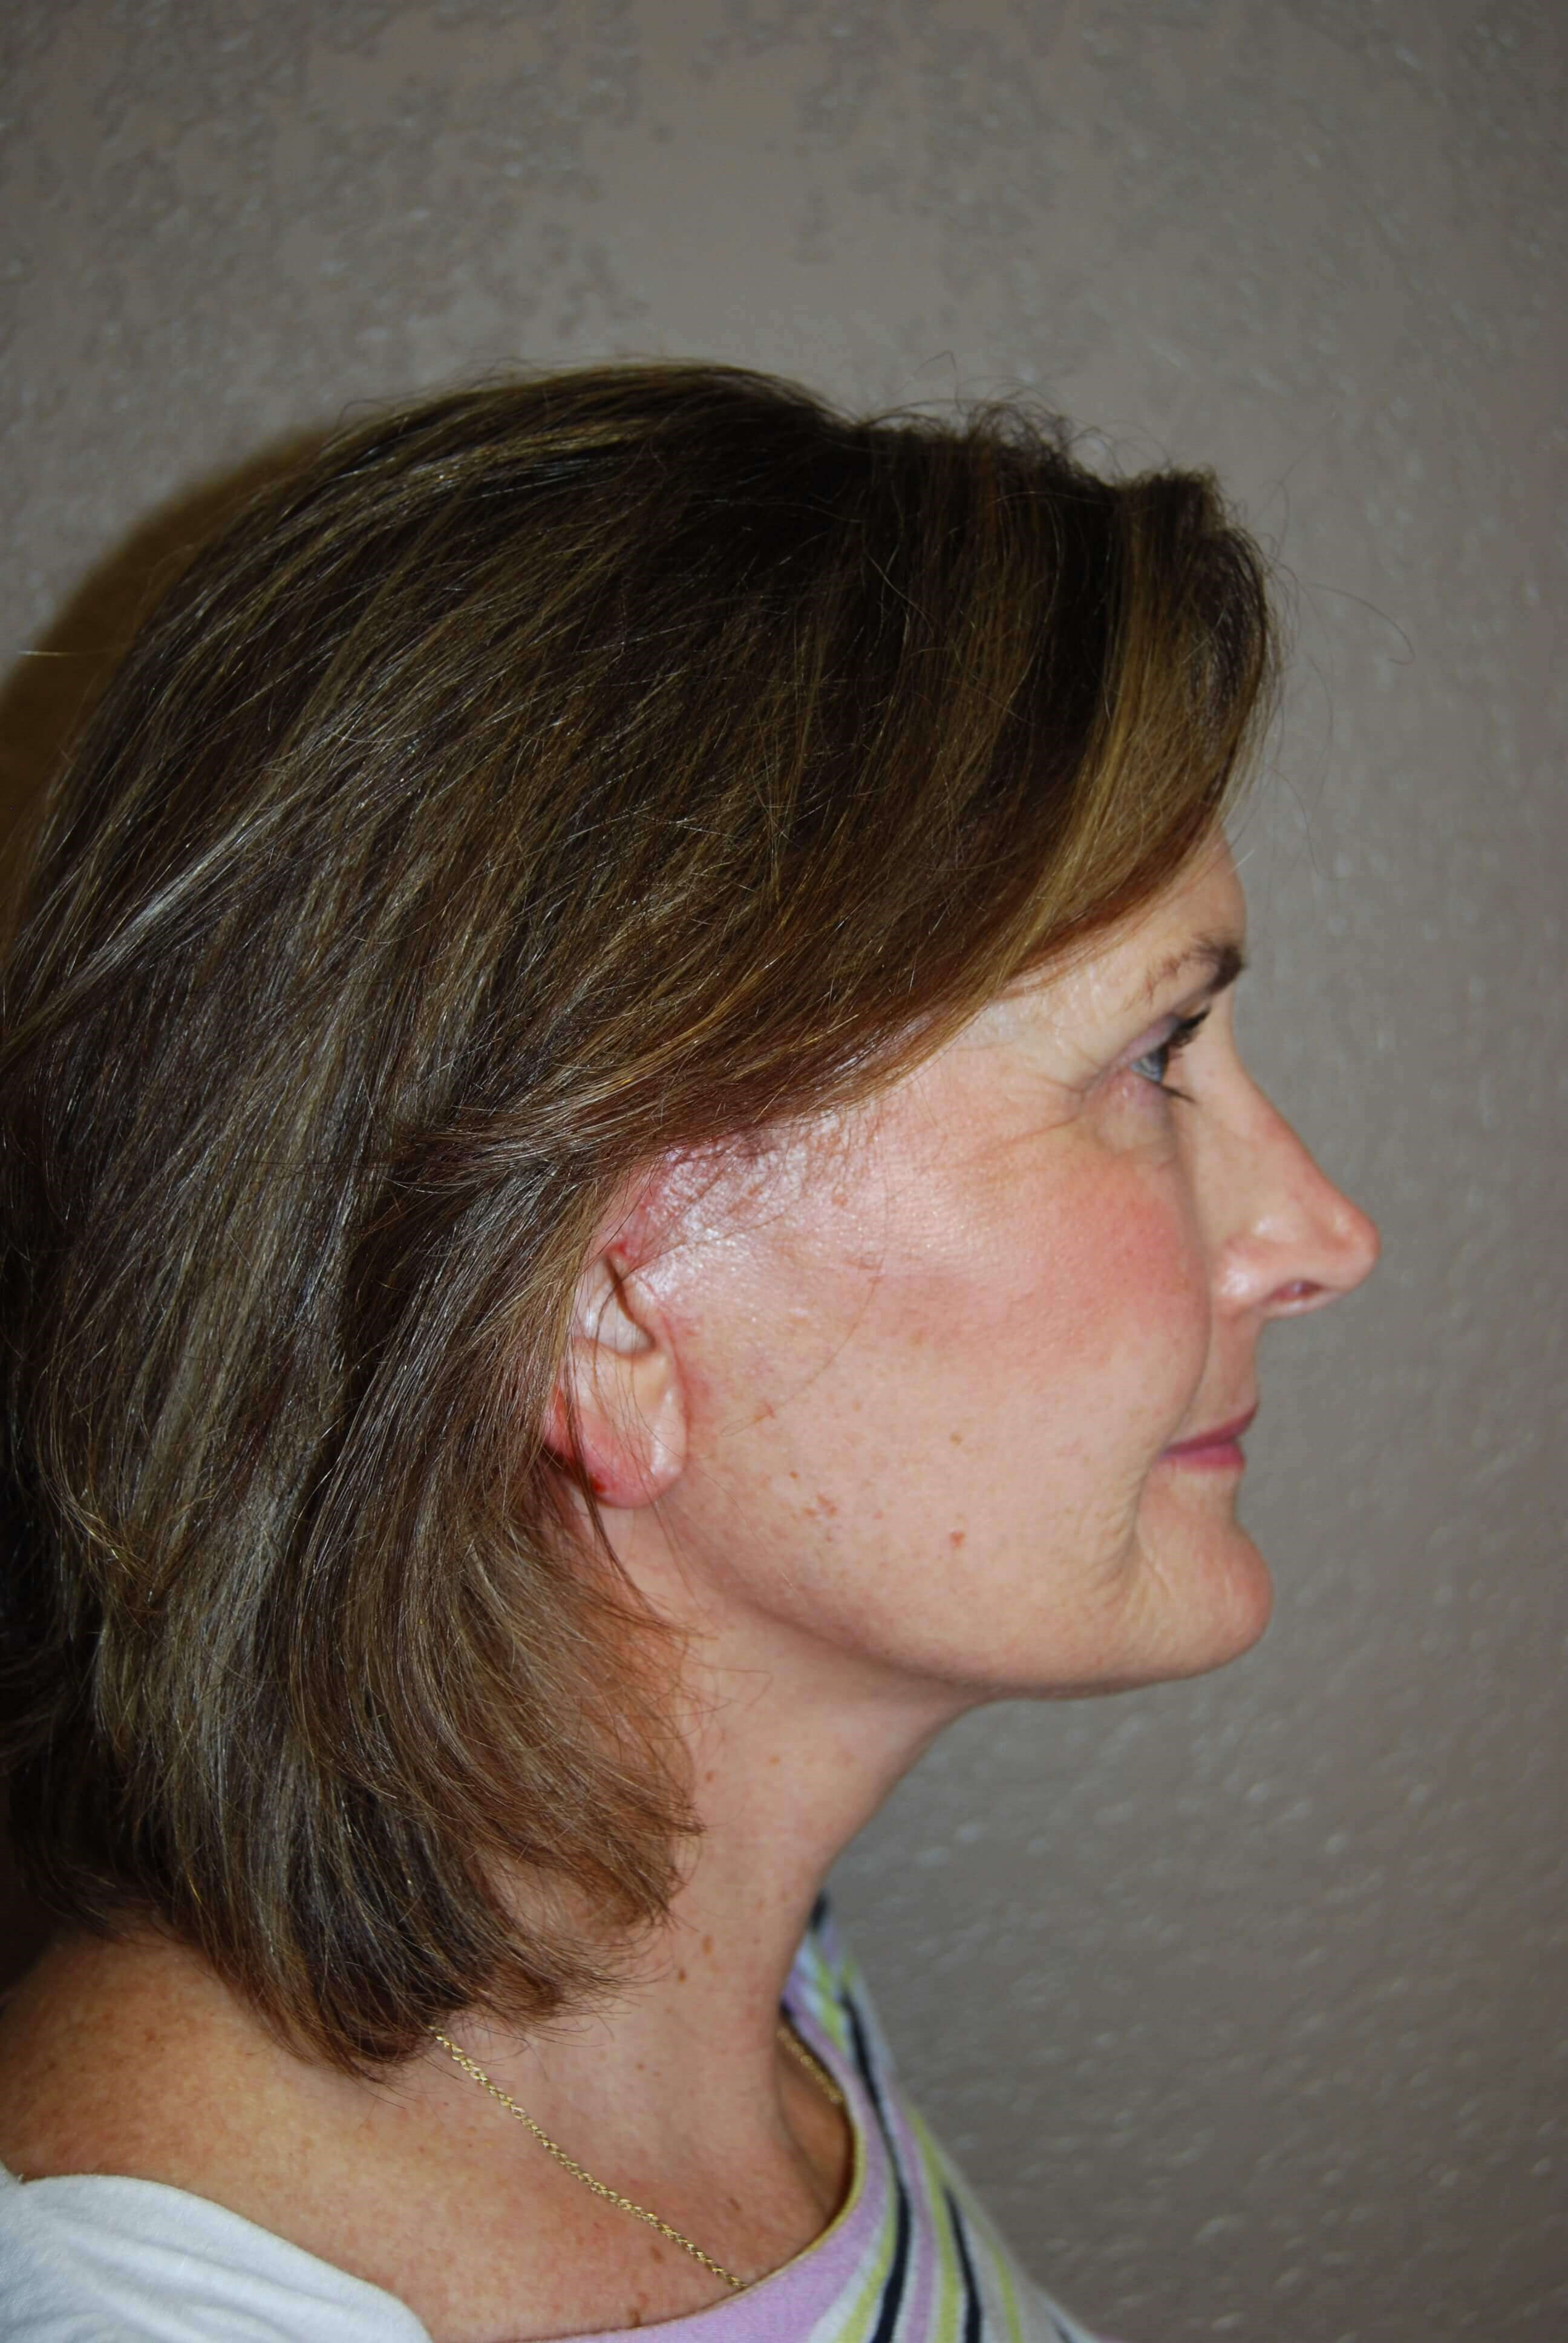 Lateral - Right After Mini Face Lift